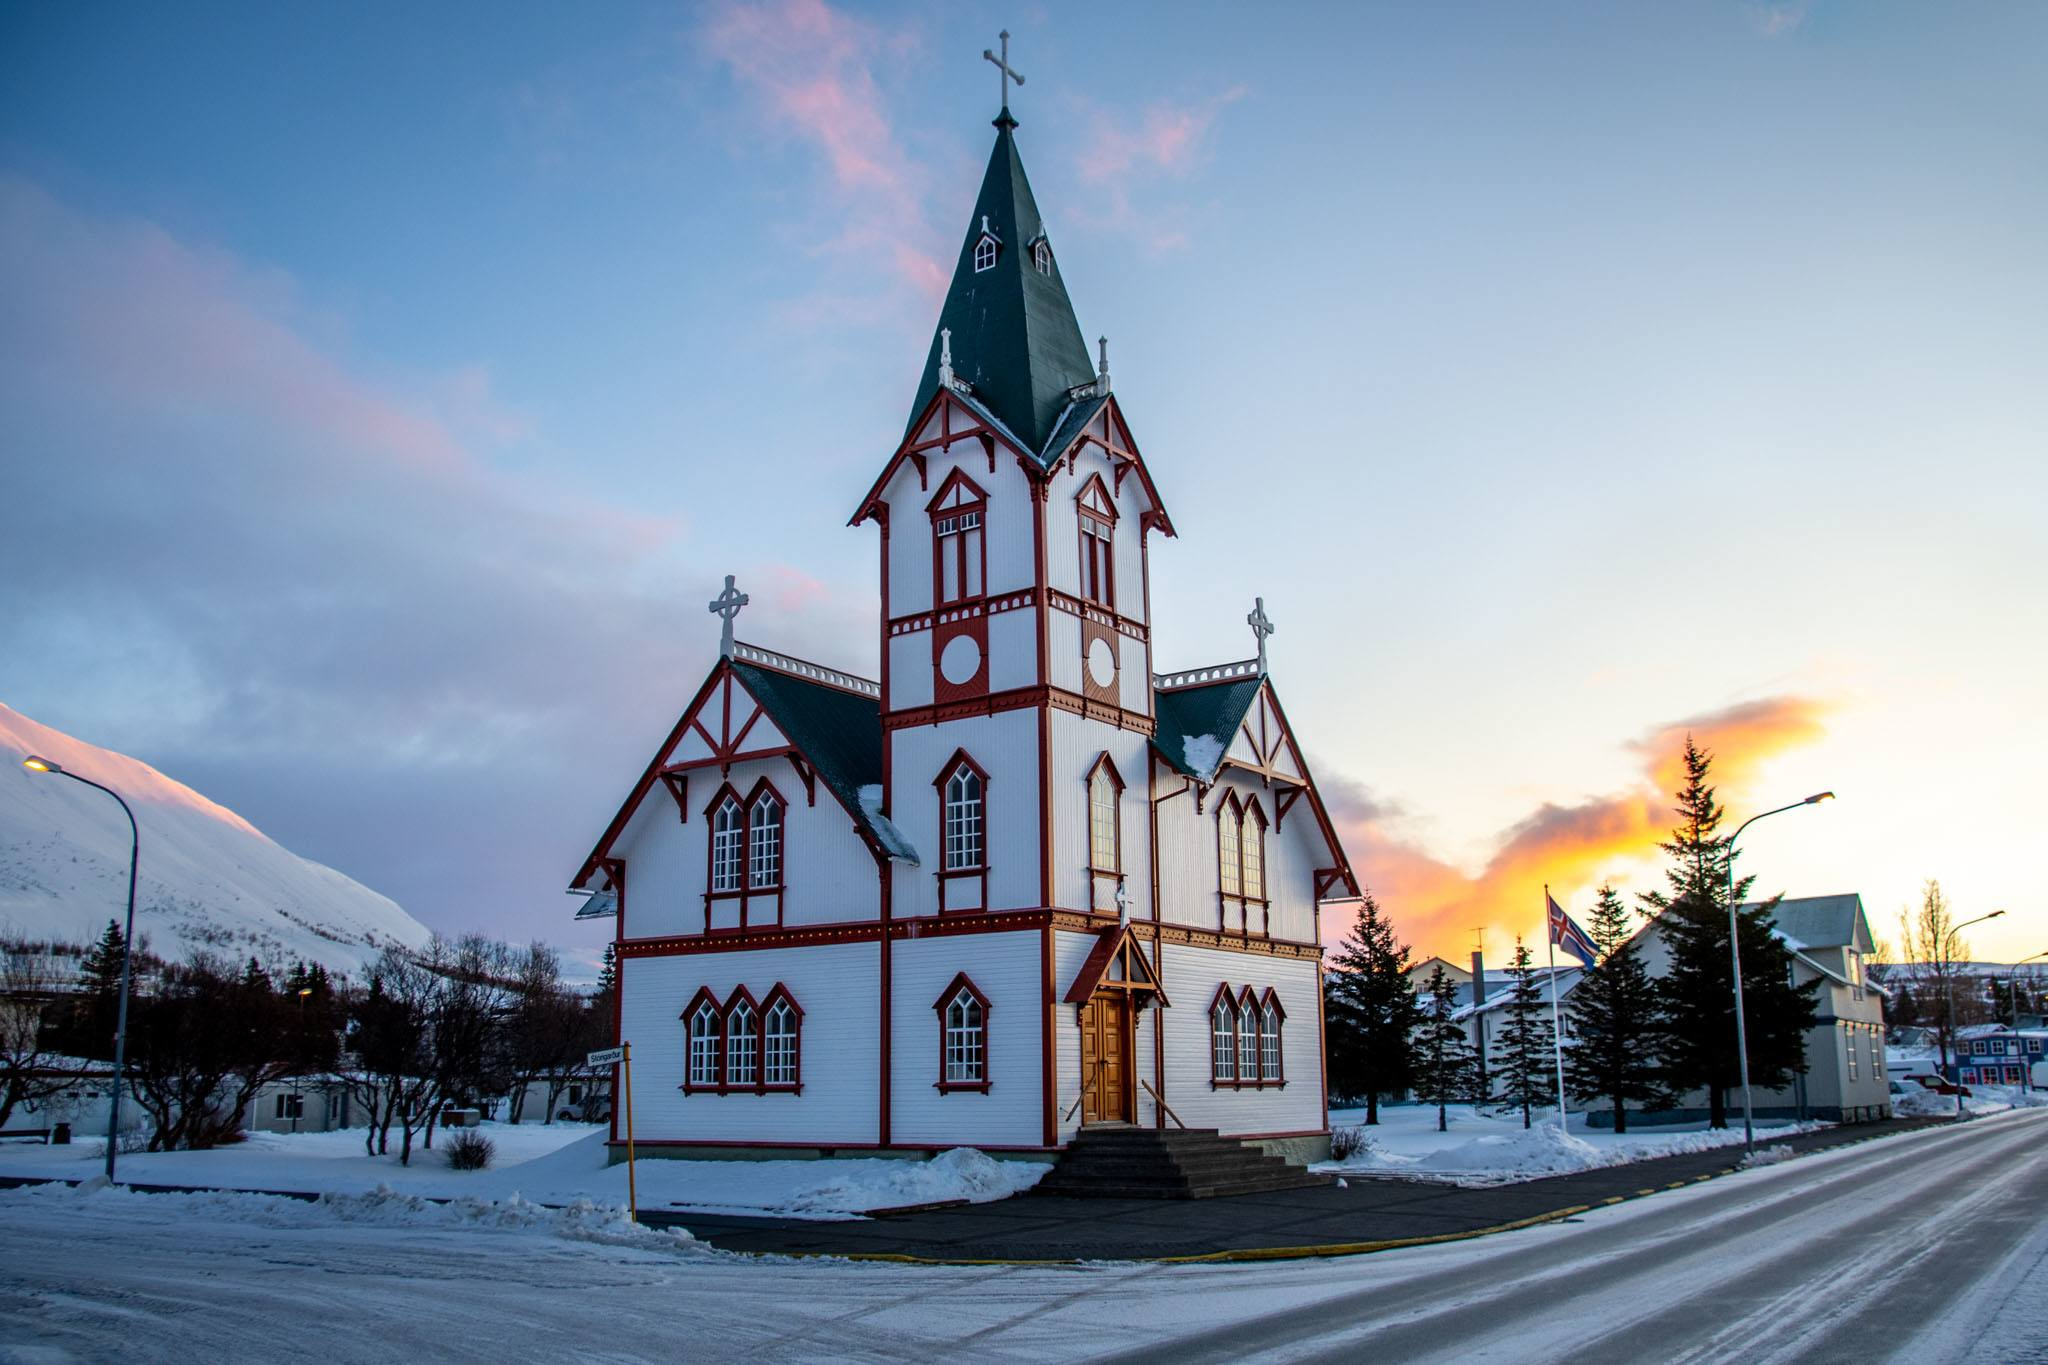 The church in Husavik, Iceland